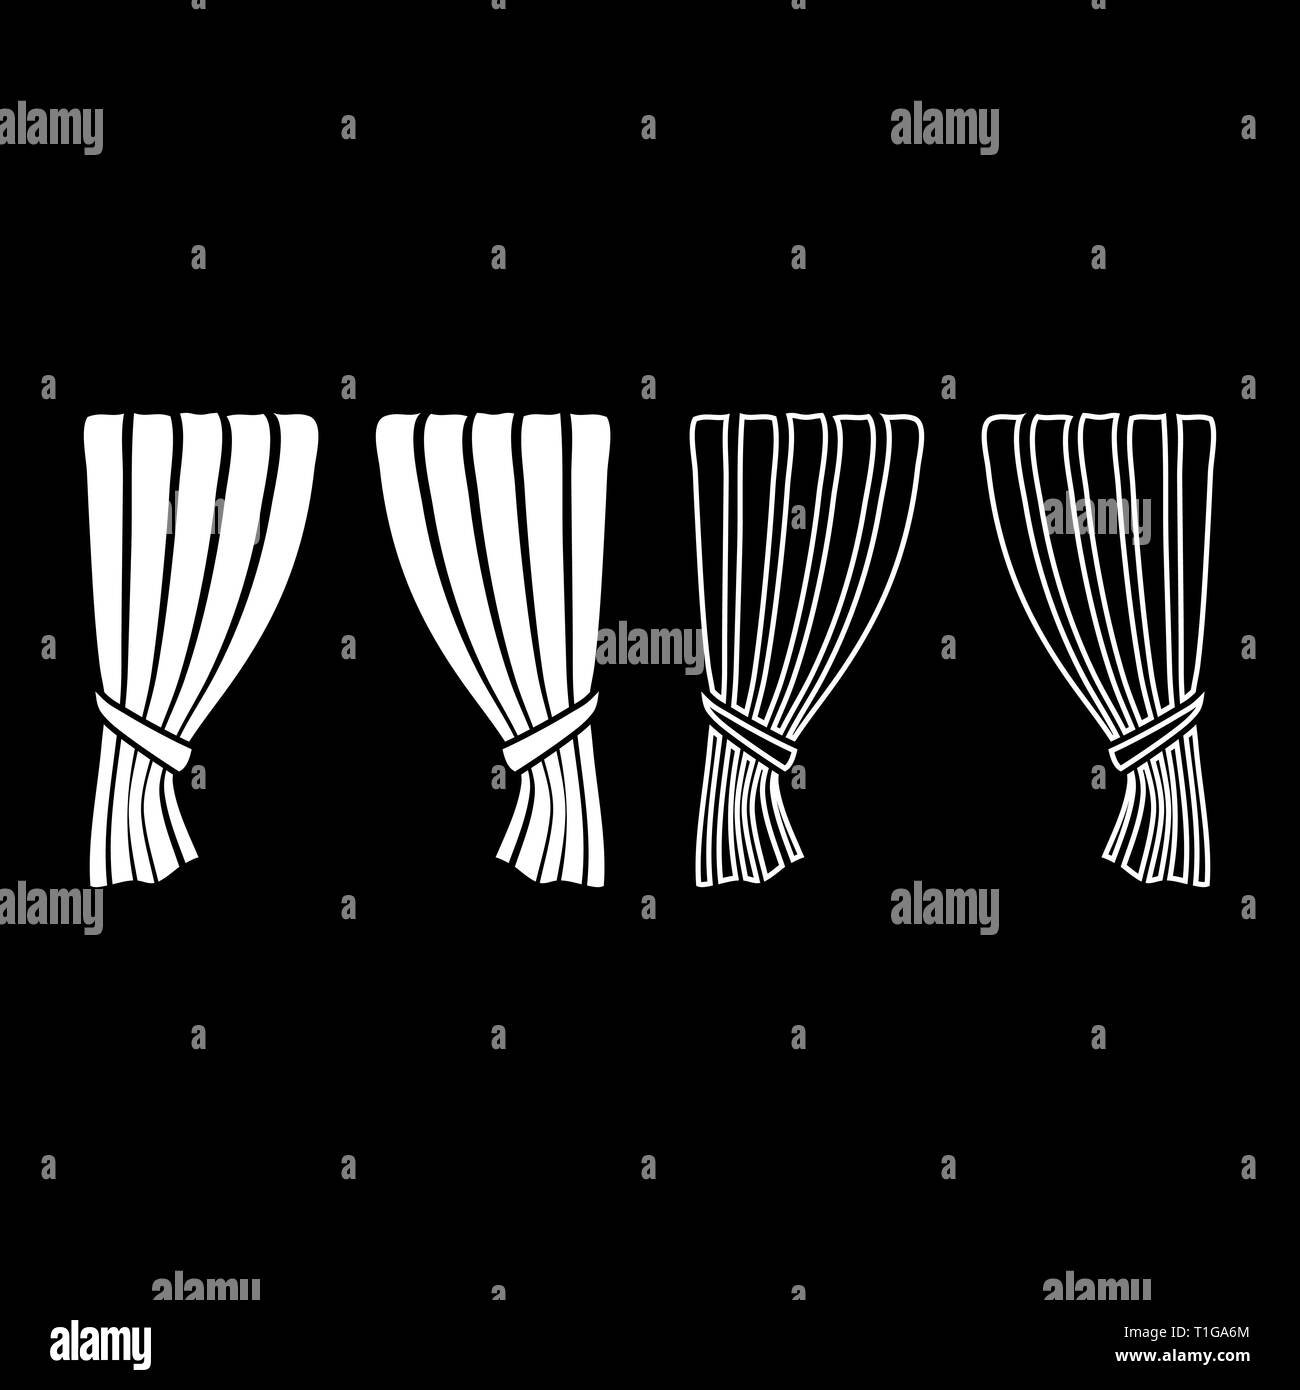 Curtains Blind Curtain Shutter Curtain Shade Portiere drapes for ceremony performance Luxurious curtains Grand opening announcement stage Stock Vector